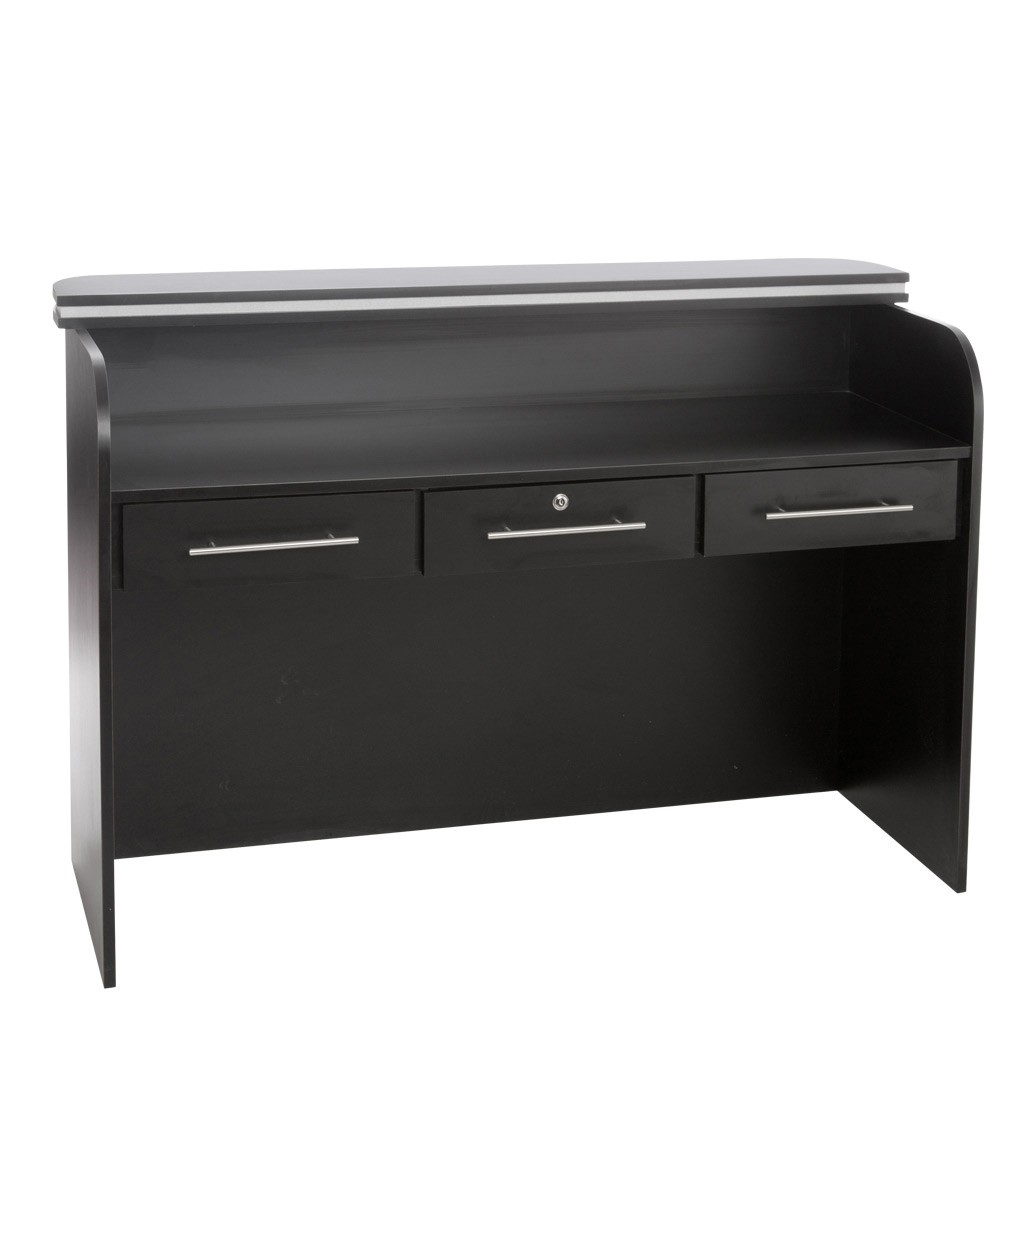 china beauty salon black reception desk reception counter desk salon front desk supplies DS-W1848